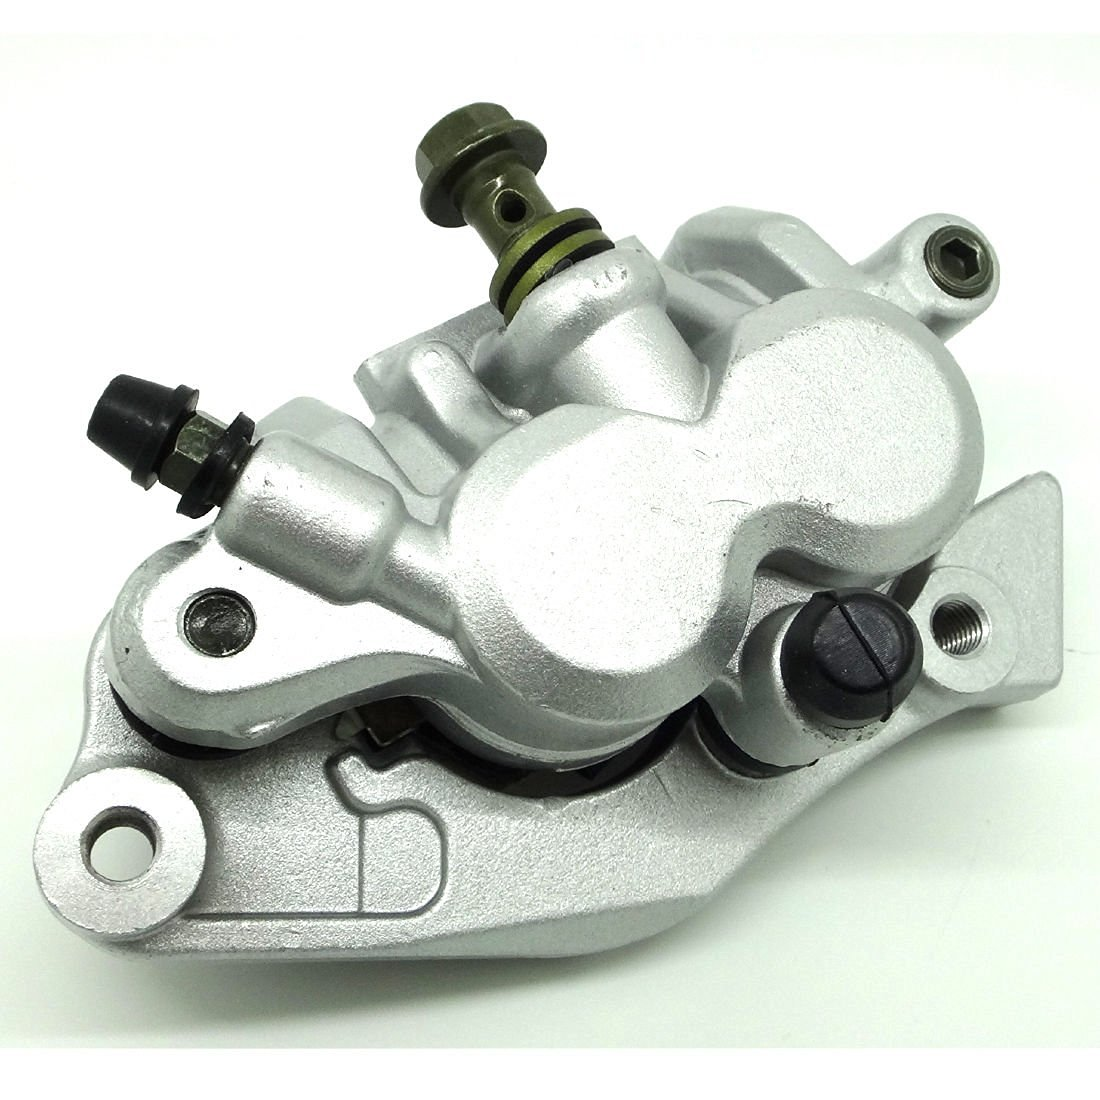 Conpus Front Brake Caliper For Honda Xr250R Xr400R 1996-2004 Xr600R 1988-2000 New 1996 Honda Xr250R A2499